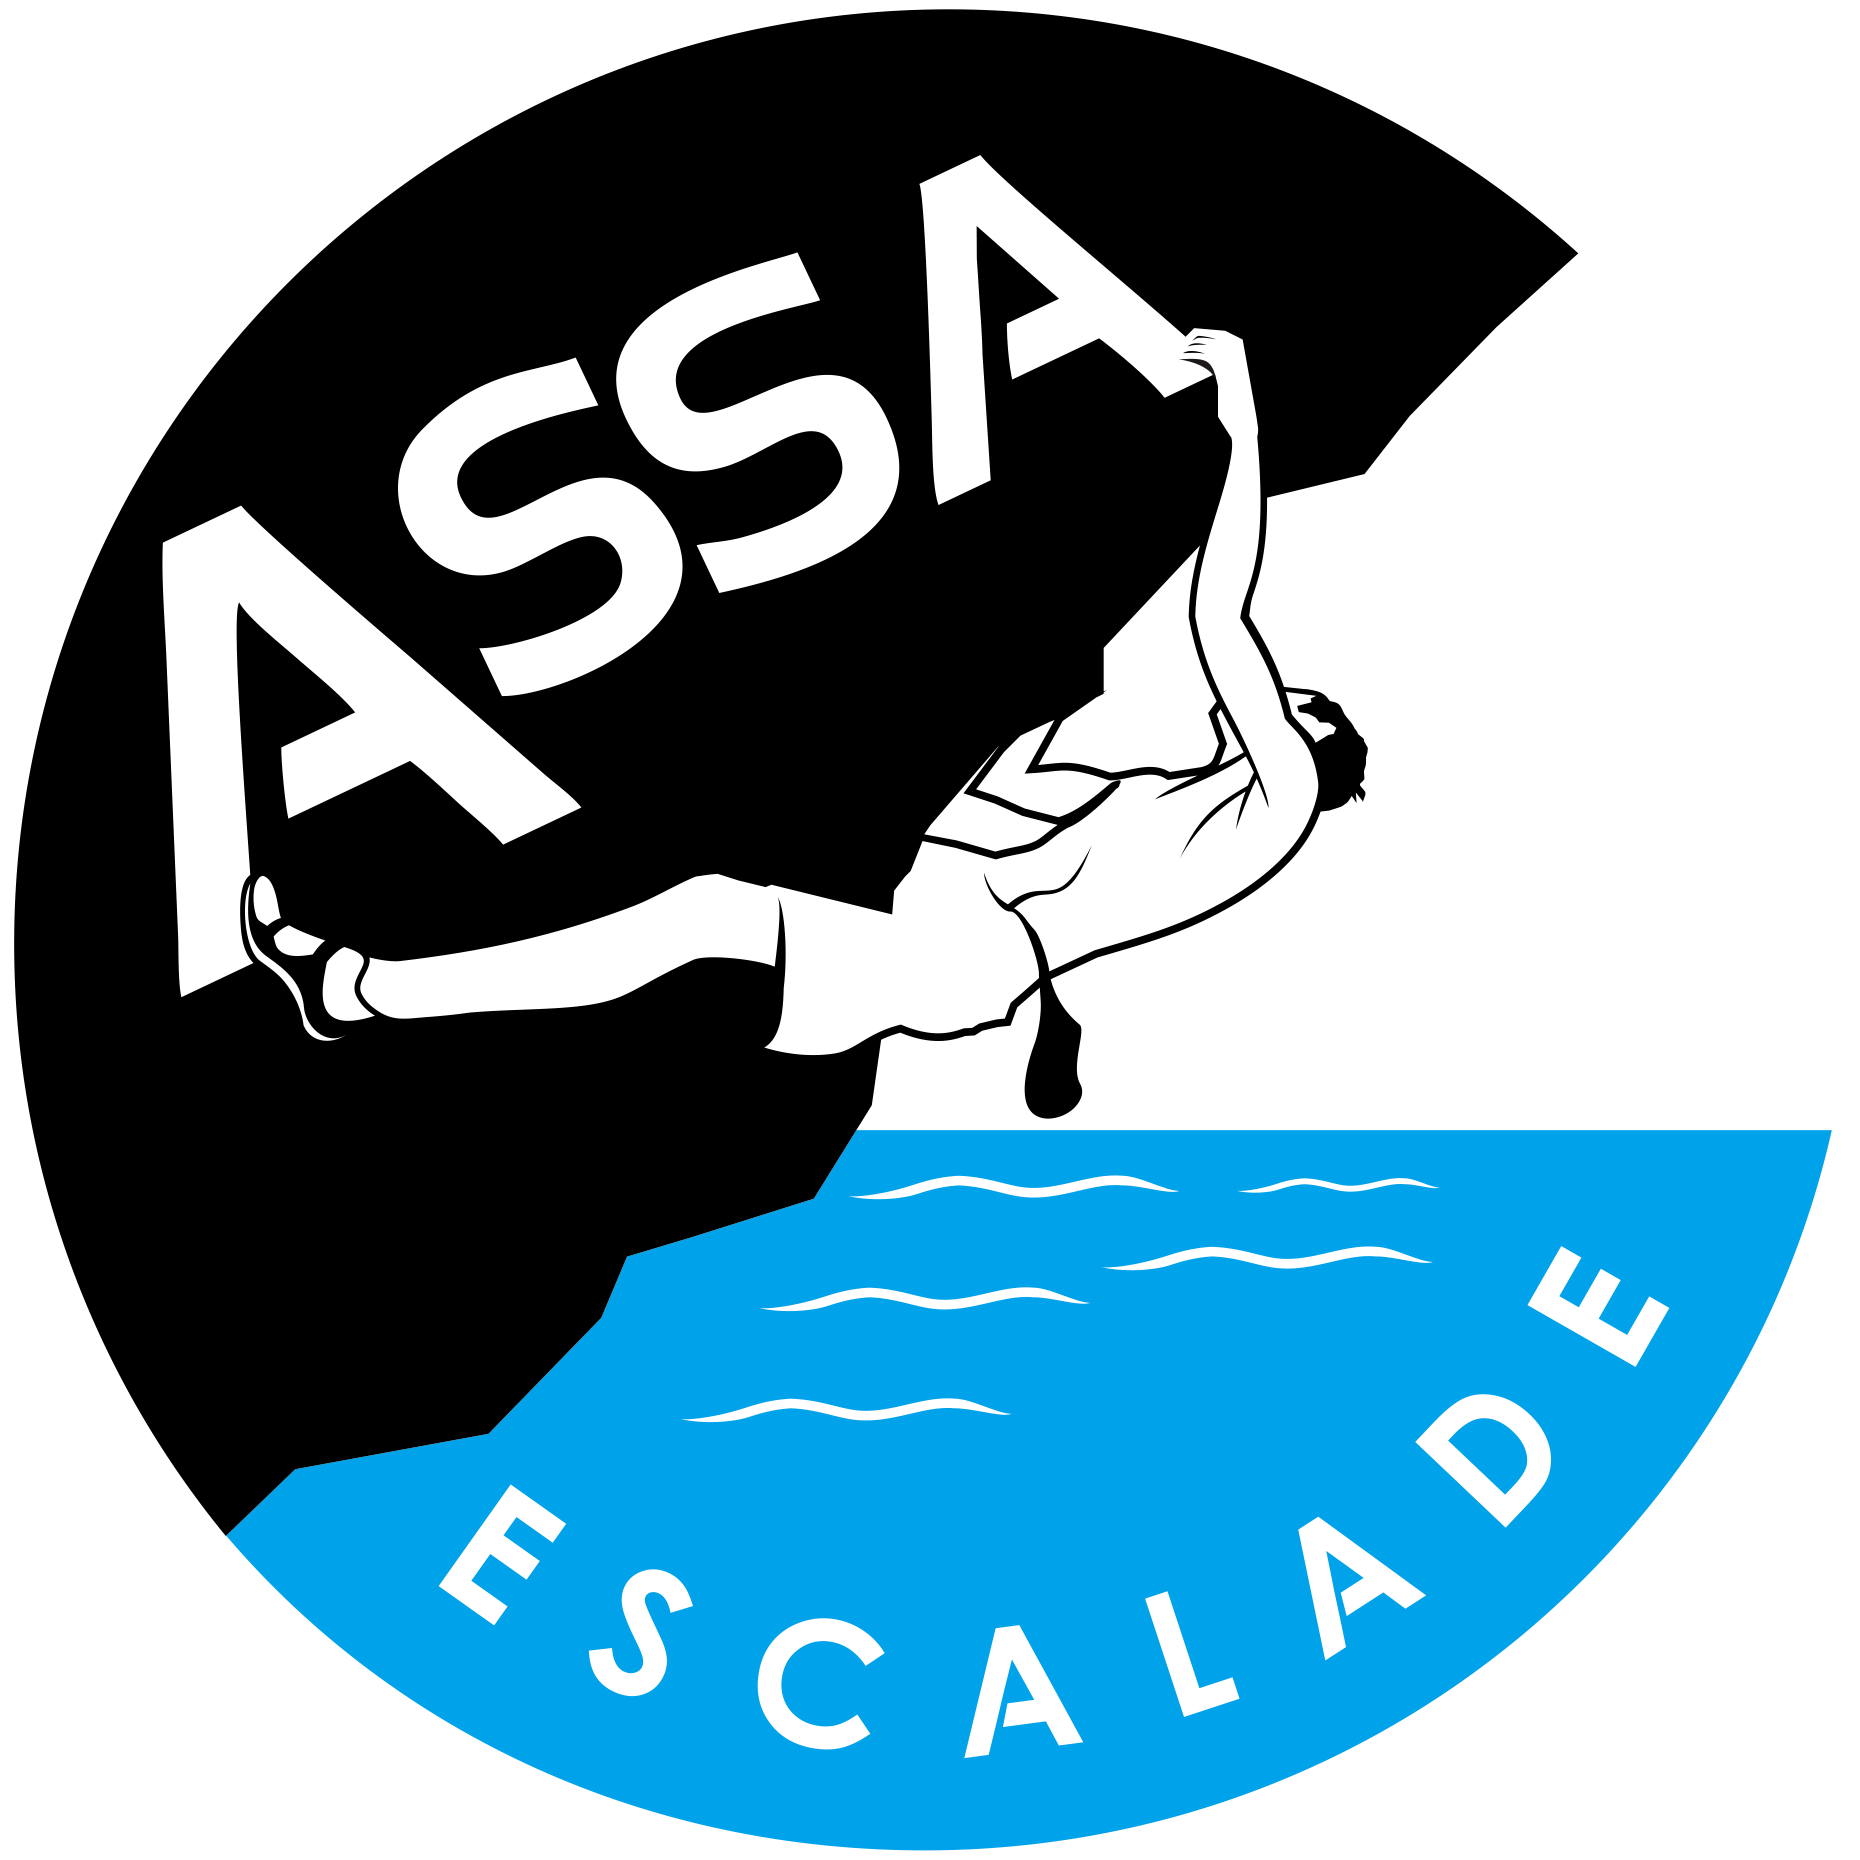 Club ASSA escalade